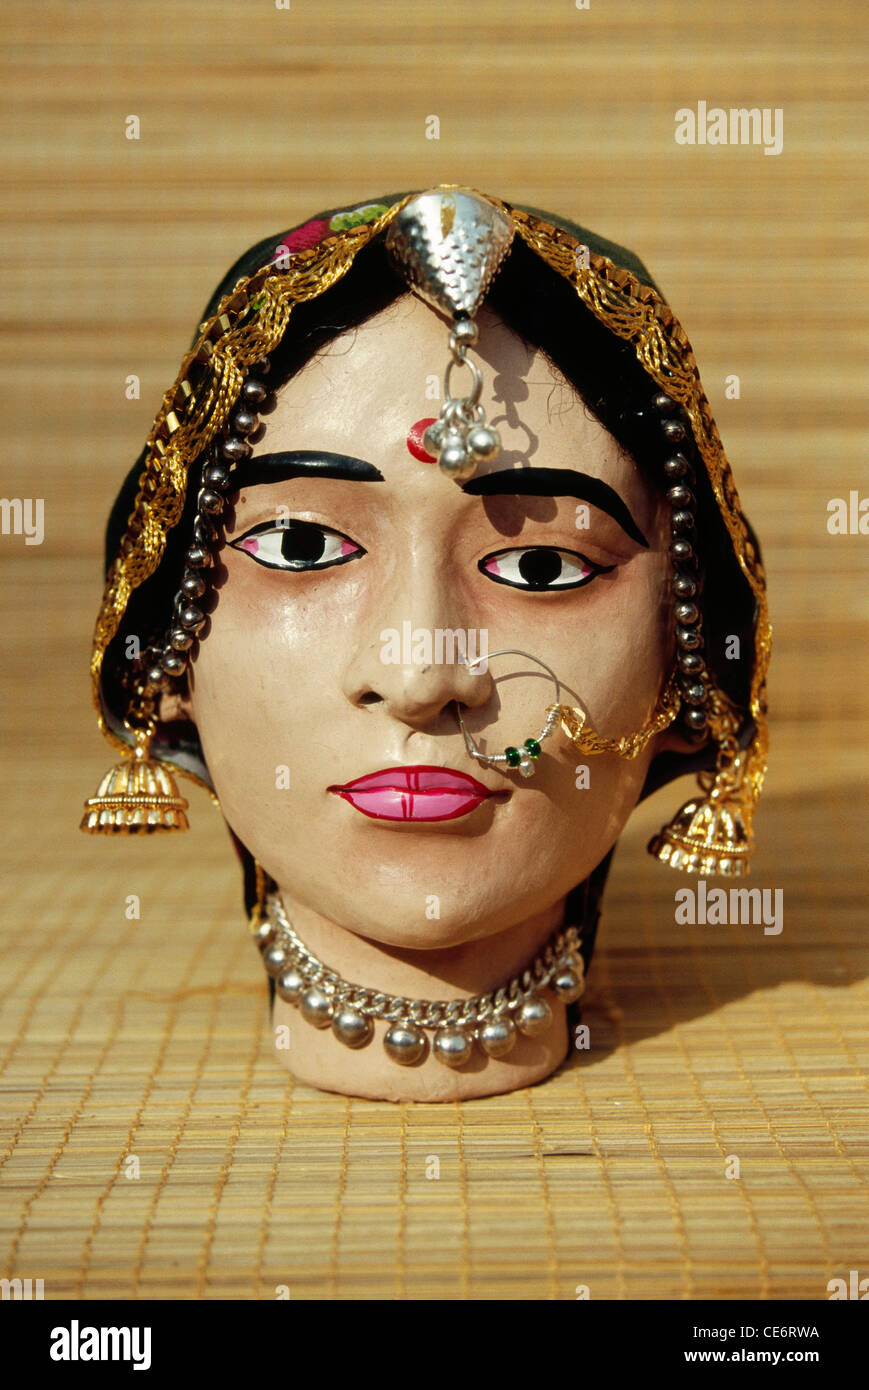 BDR 85100 : mannequin head of rajasthani indian woman nose ring ...